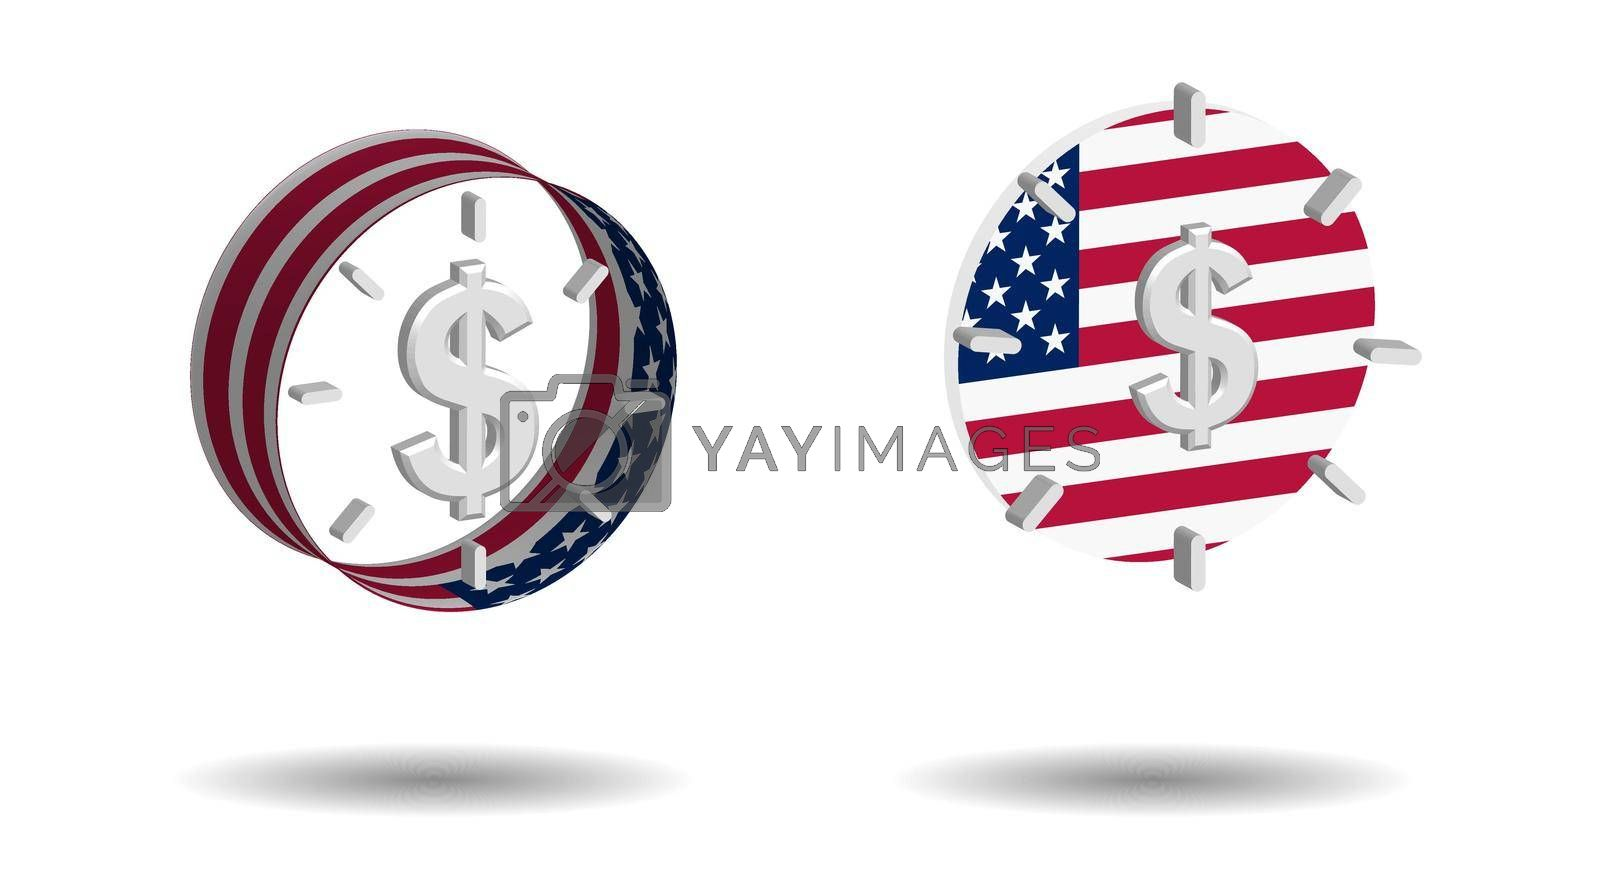 set of multi-colored alarm clocks with us dollar sign and american flag elements on a transparent background by RNko